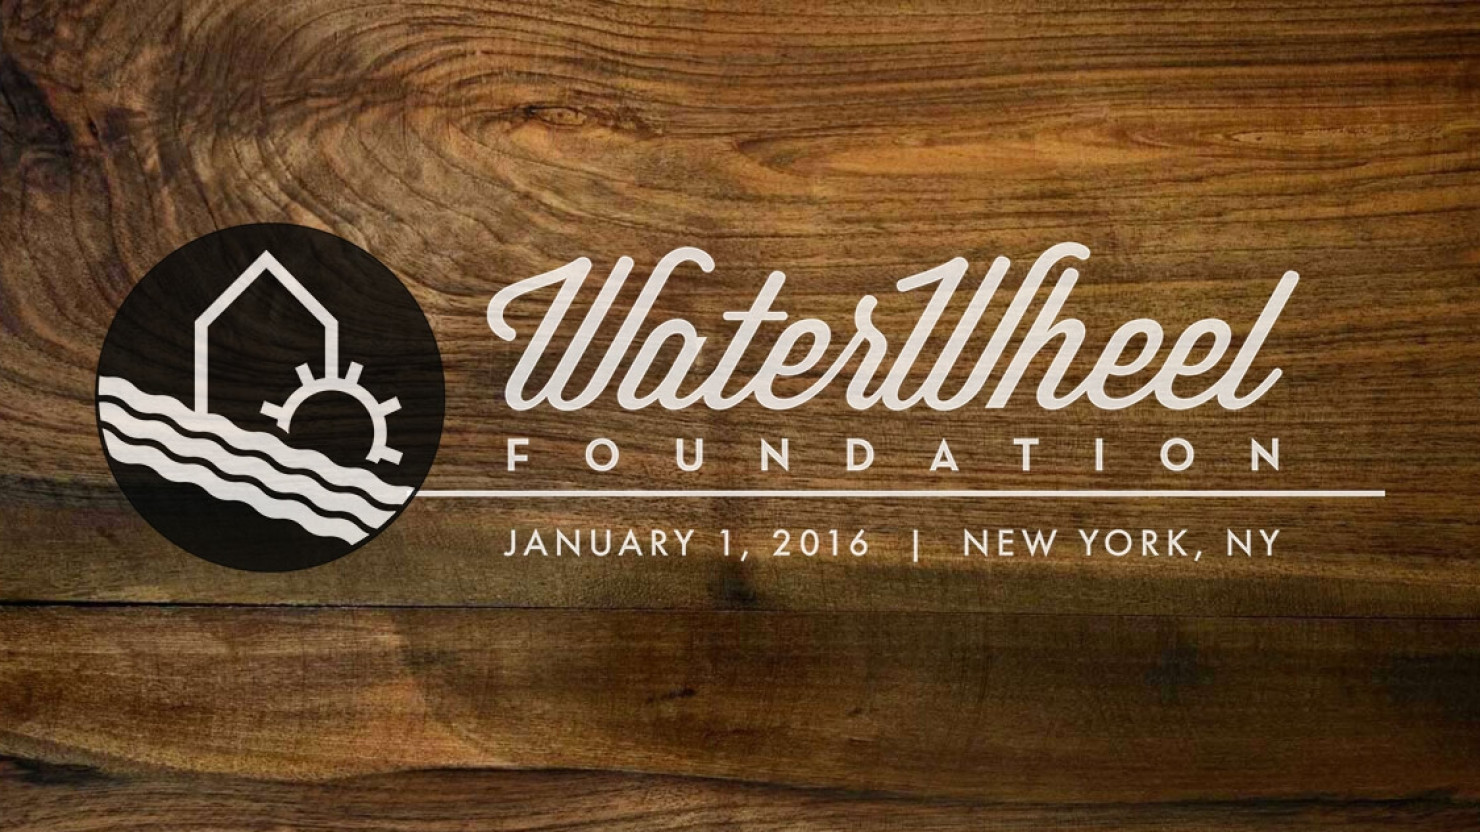 Phish\'s WaterWheel Foundation To Host MSG Pre-Show Benefit